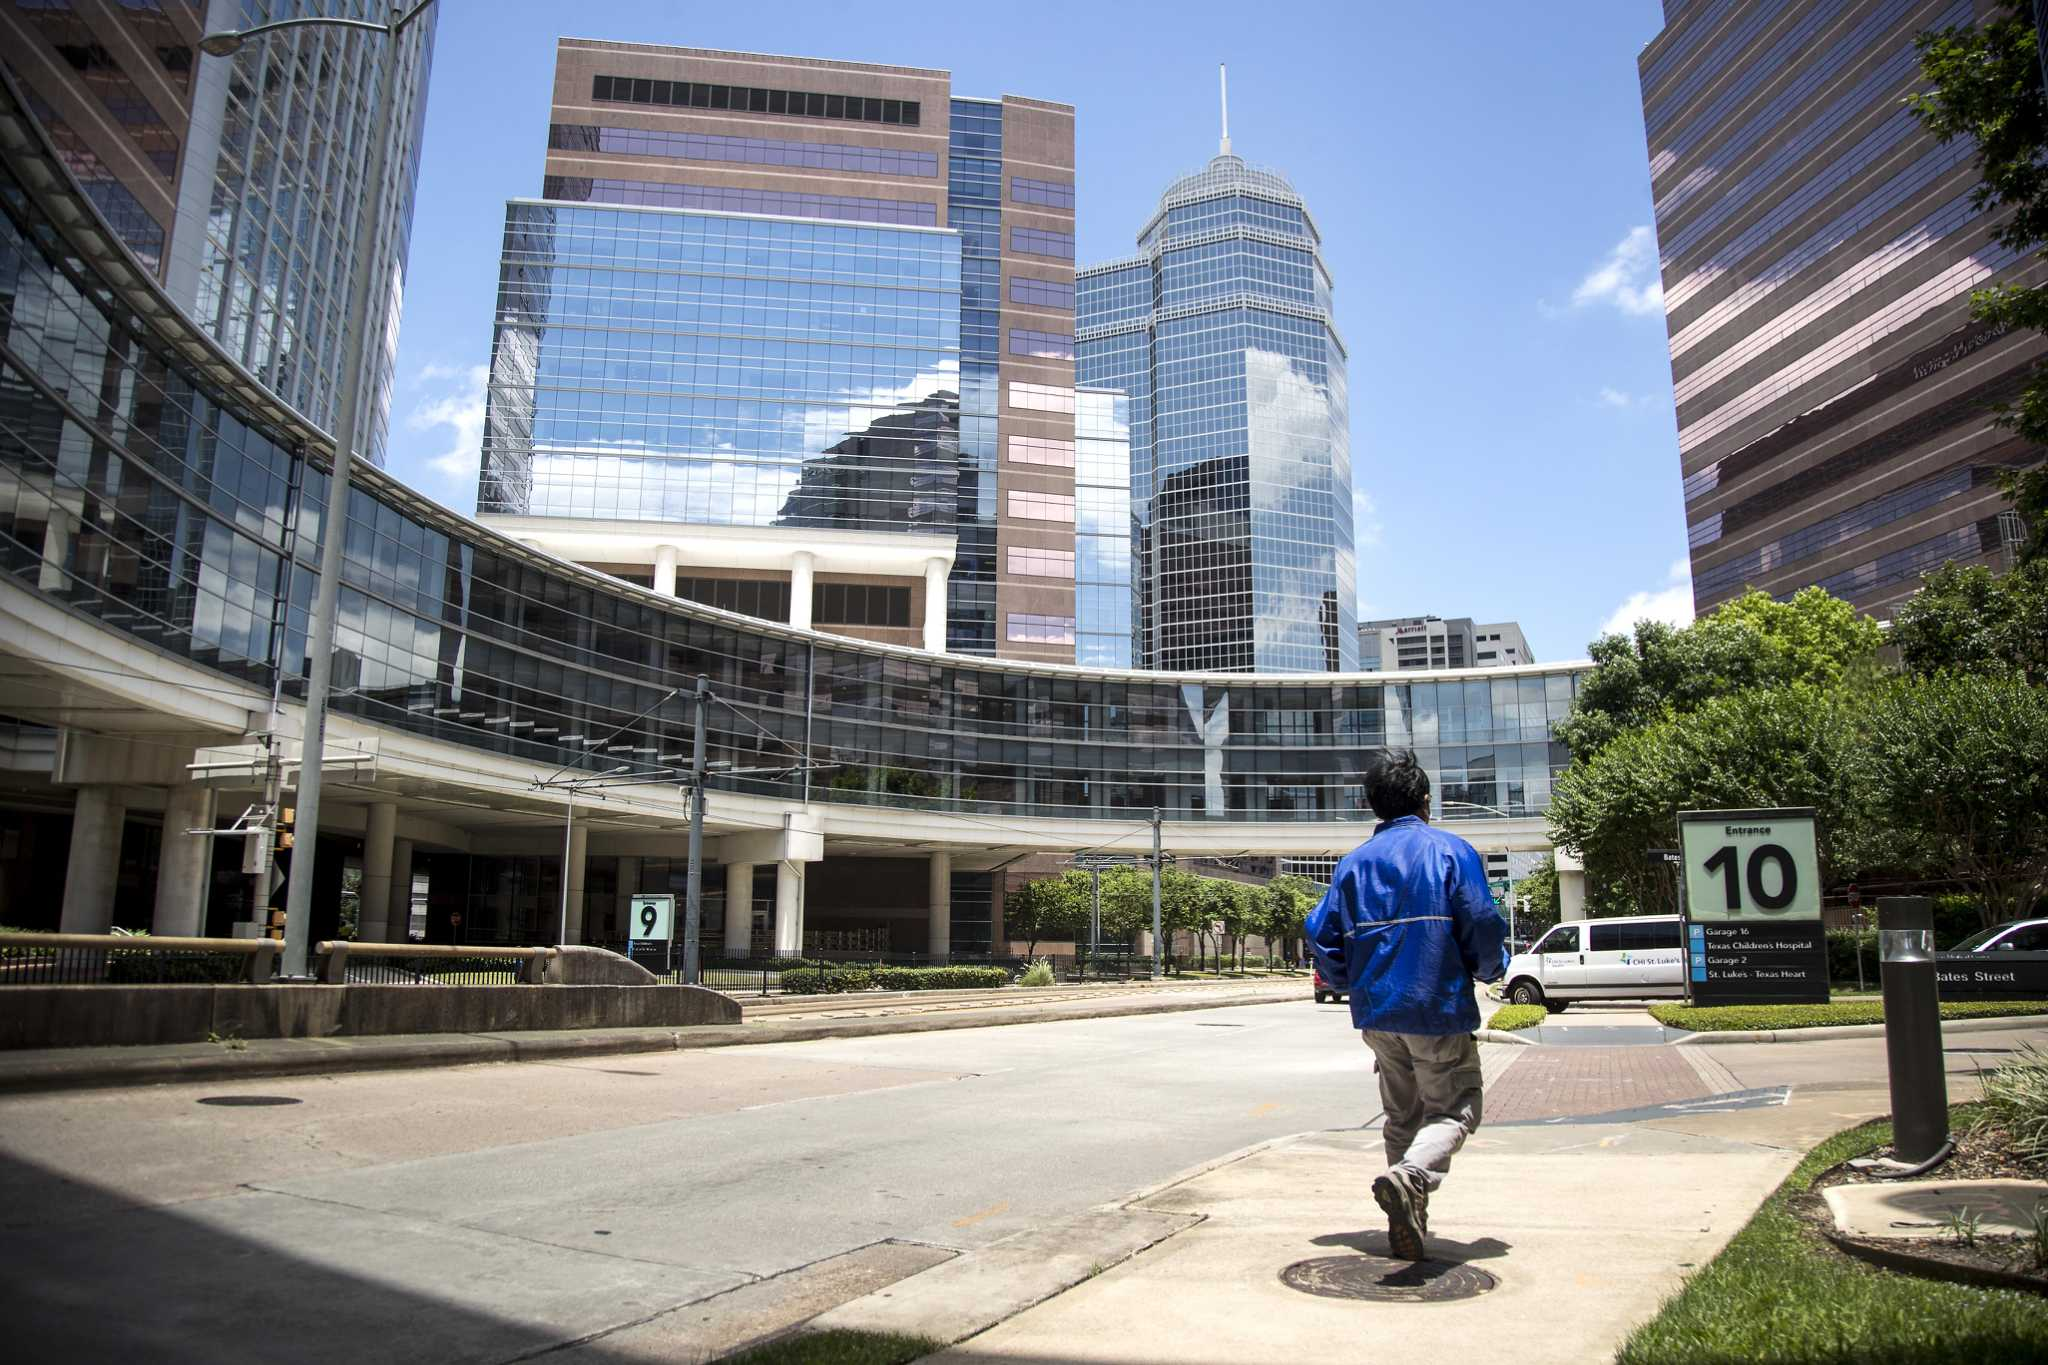 Texas COVID-19 hospitalizations drop for first time in 2 weeks